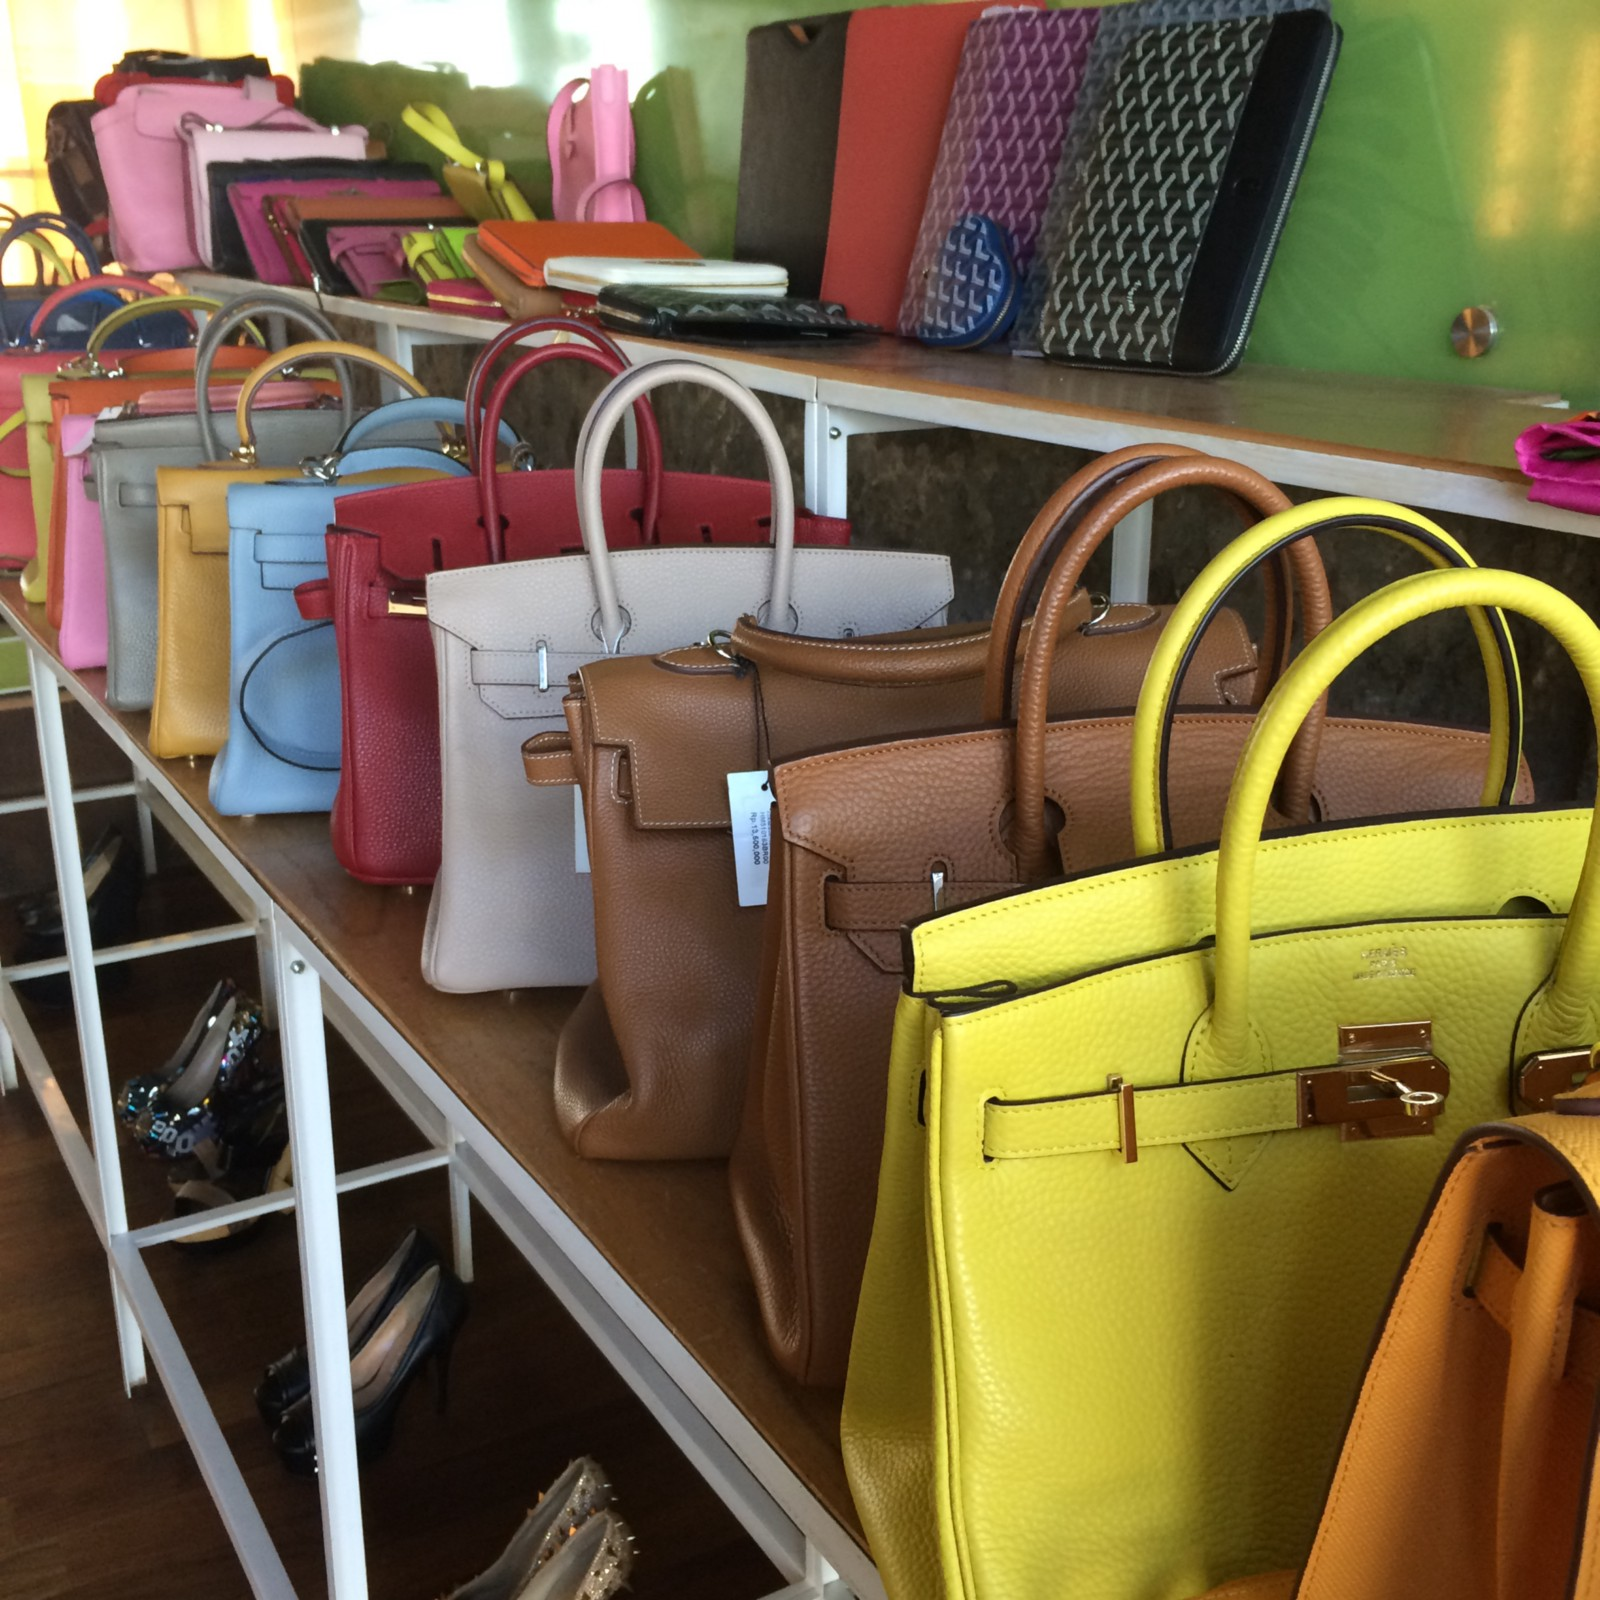 c64501b3bb22 The Truth About Counterfeit Luxury Handbags – Becca Risa Luna – Medium